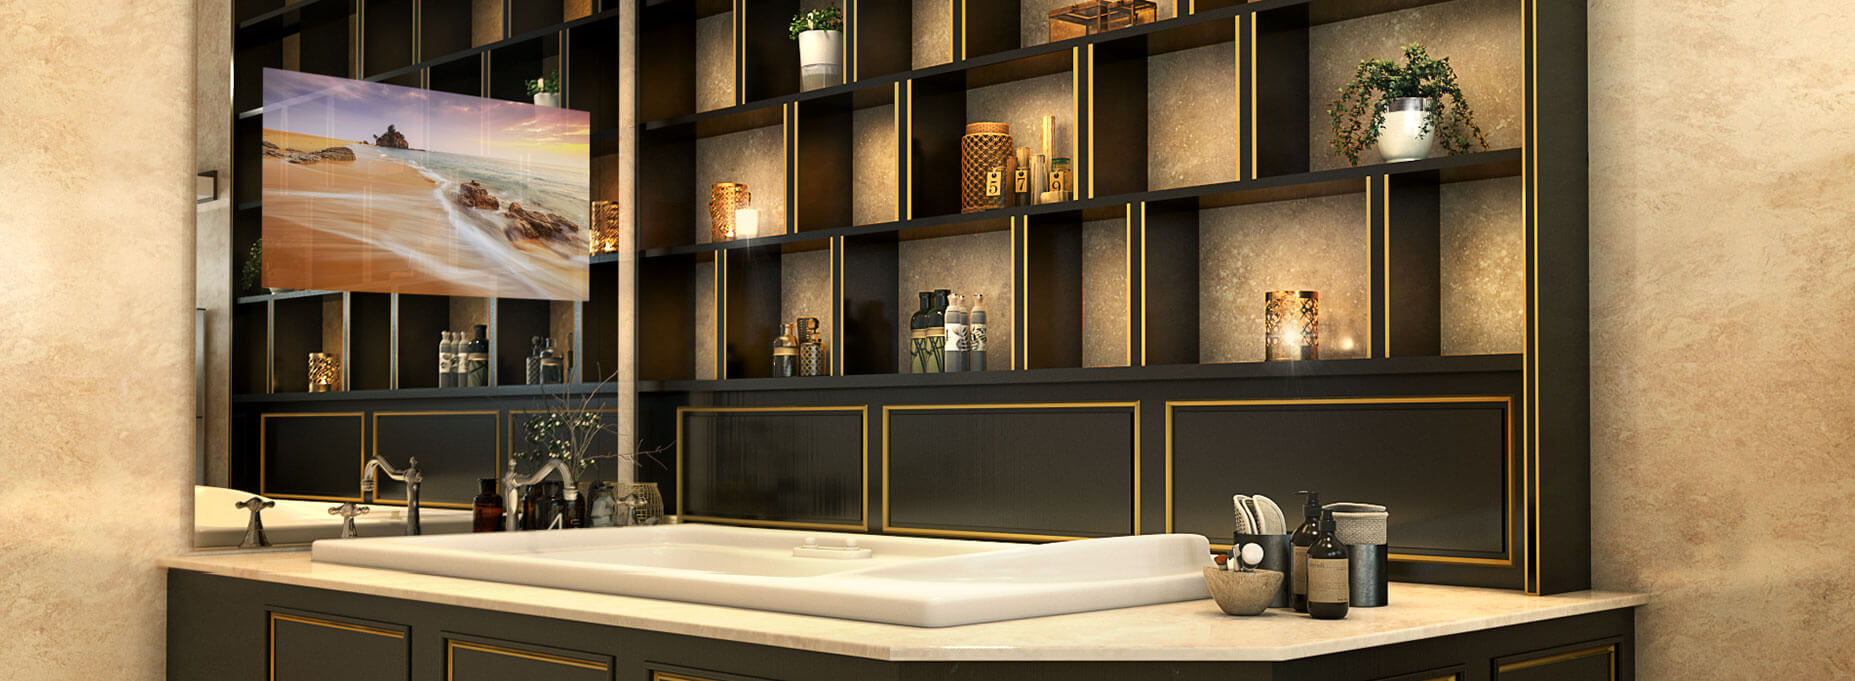 A bathroom full of shelves in black and gold and a tub facing a frameless mirror with its TV showing a beautiful scene of a beach.